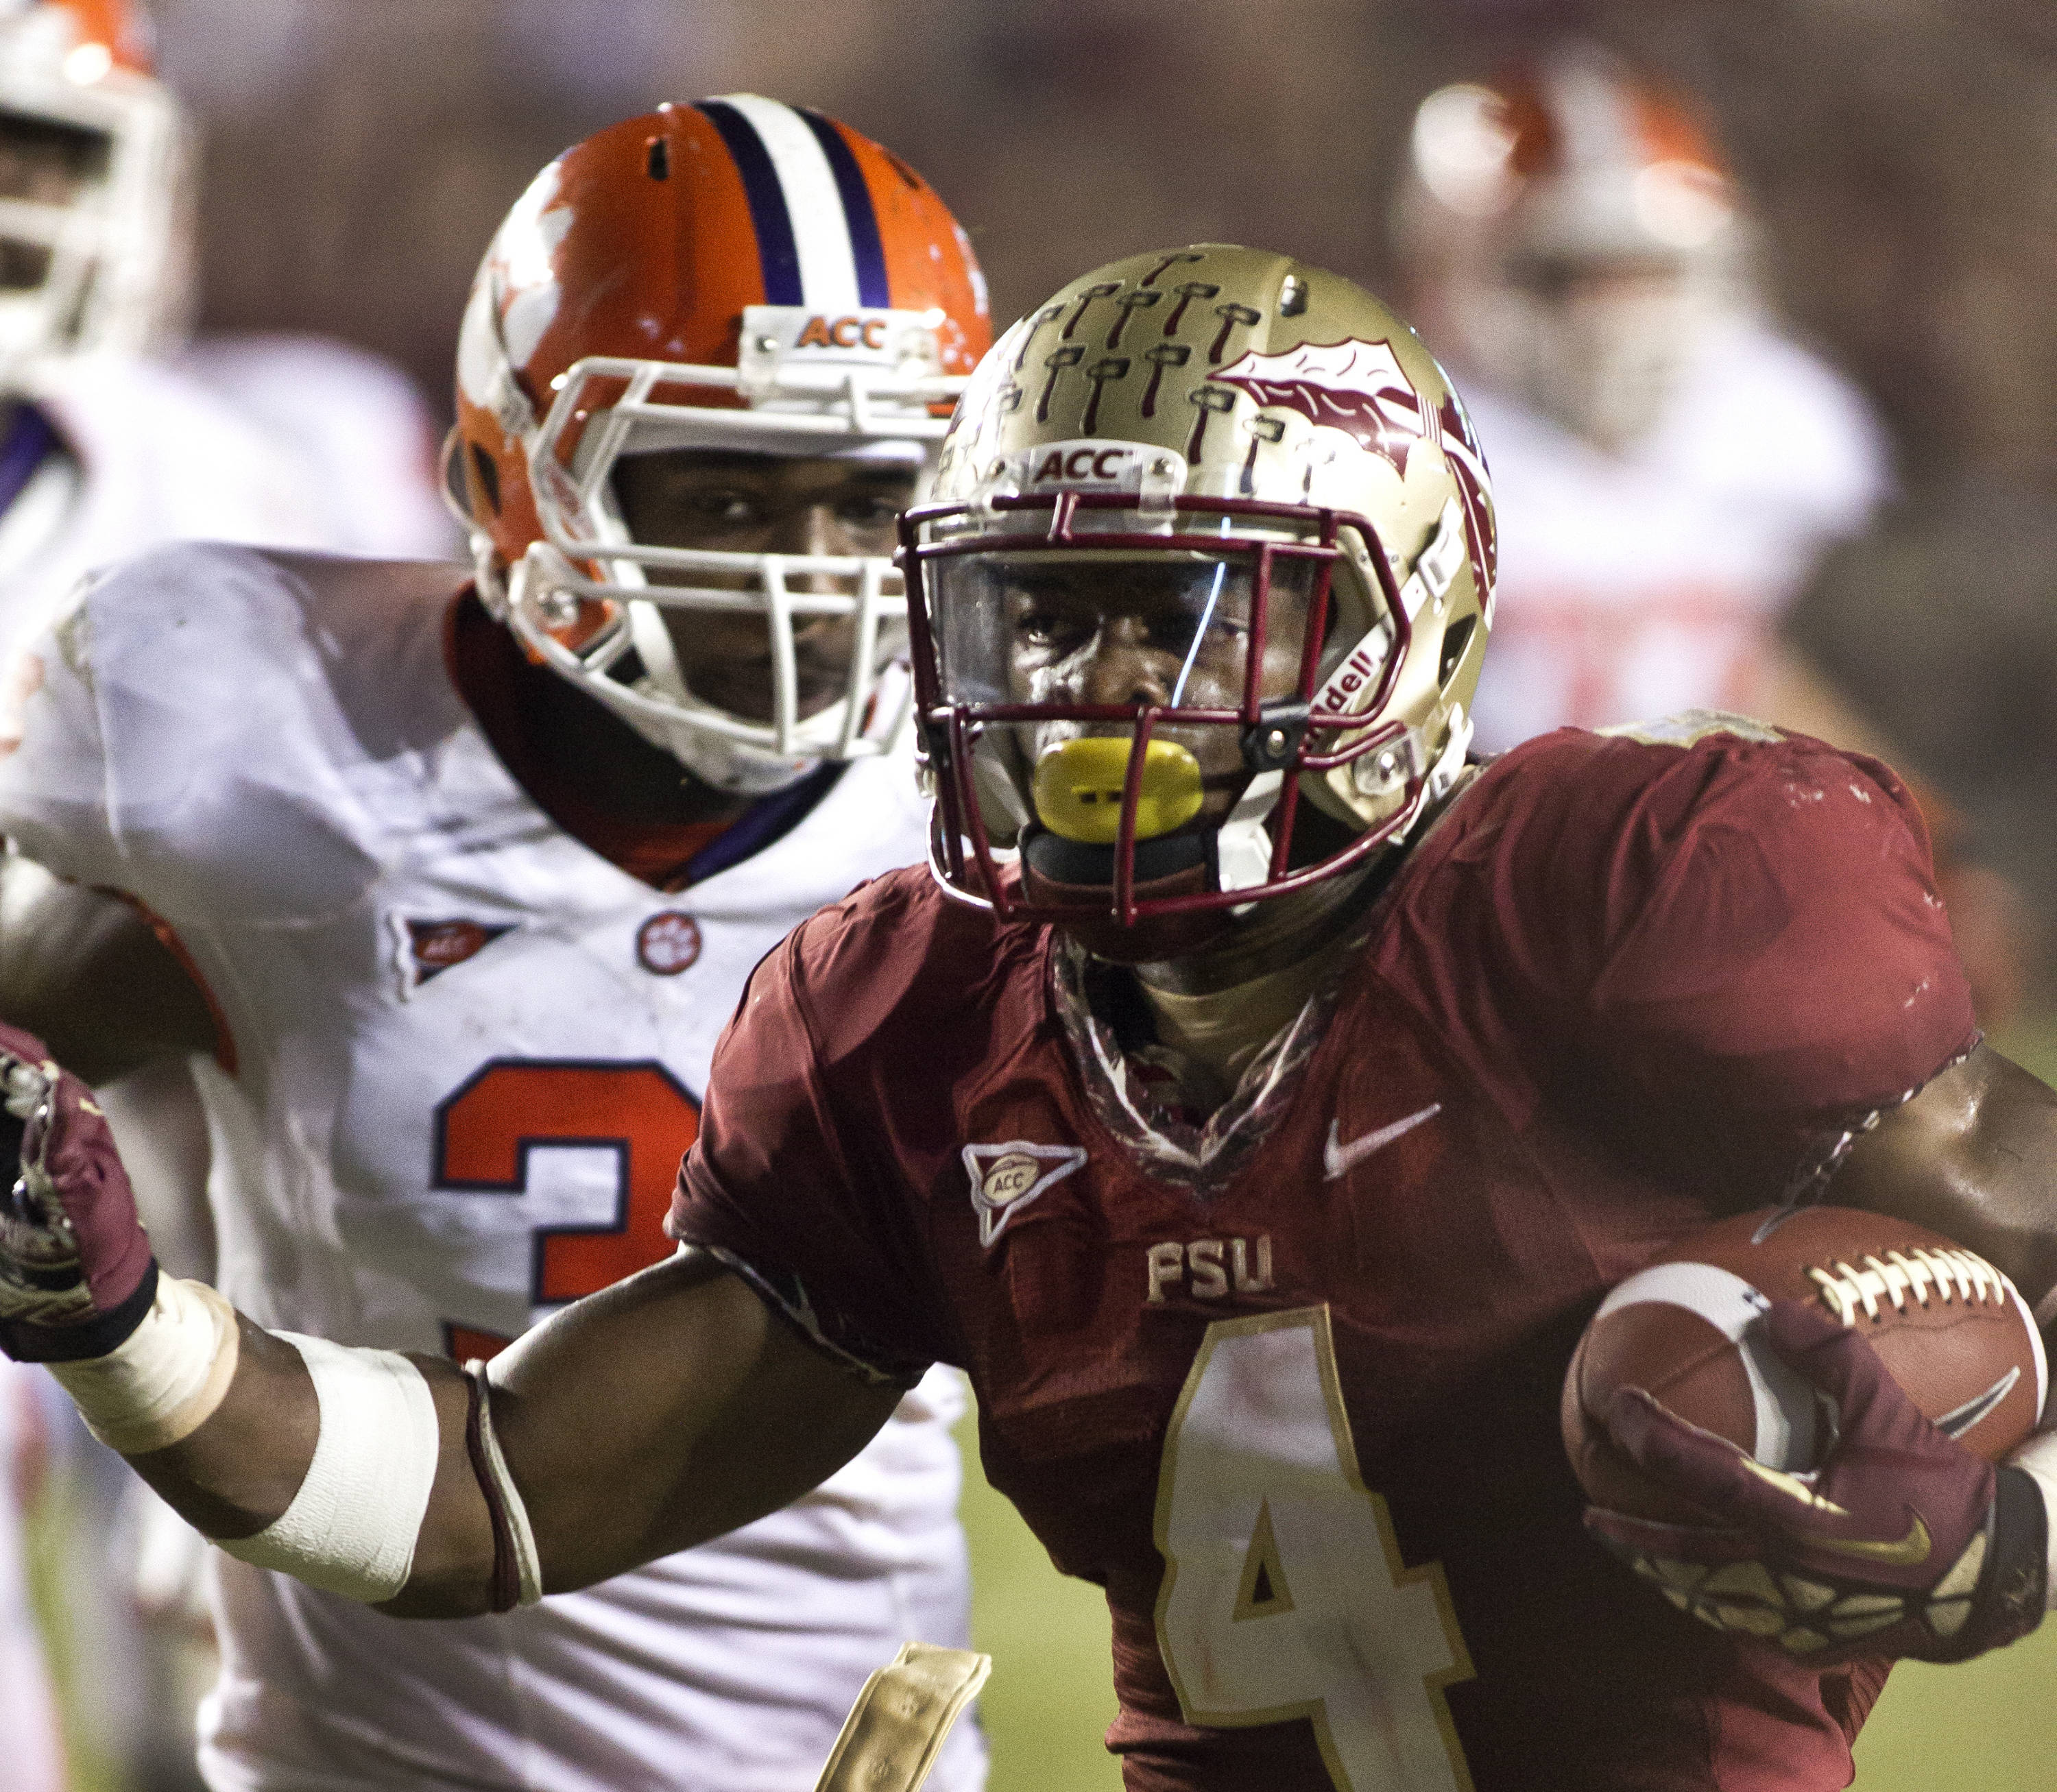 Chris Thompson (4) on his touchdown run, FSU vs Clemson, 9/22/12 (Photo by Steve Musco)